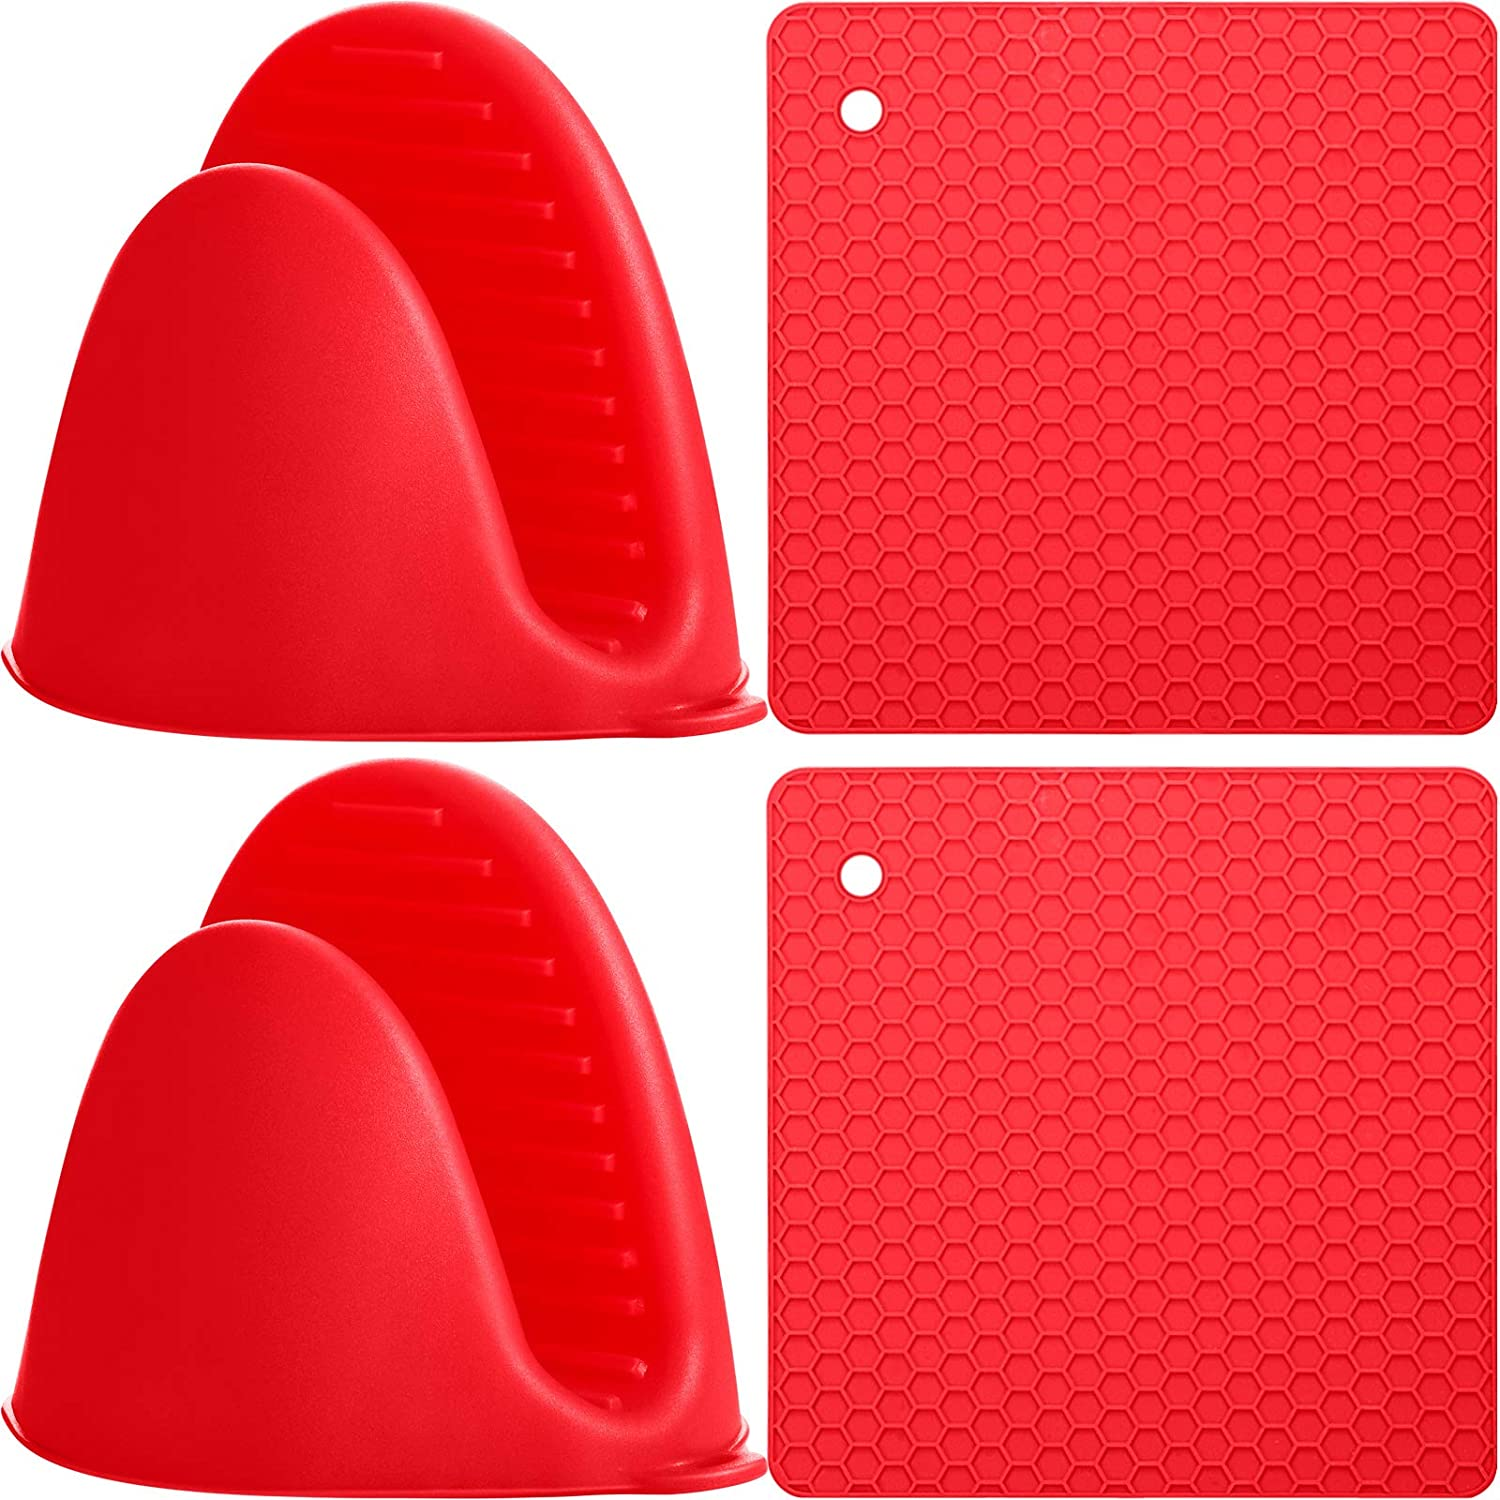 4 Pieces Cooking Pinch Mitts Set Includes 2 Pieces Mini Heat Resistant Oven Gloves 2 Pieces Silicone Insulation Pads Potholder Anti-Scald Heat for Cooking Baking, Red